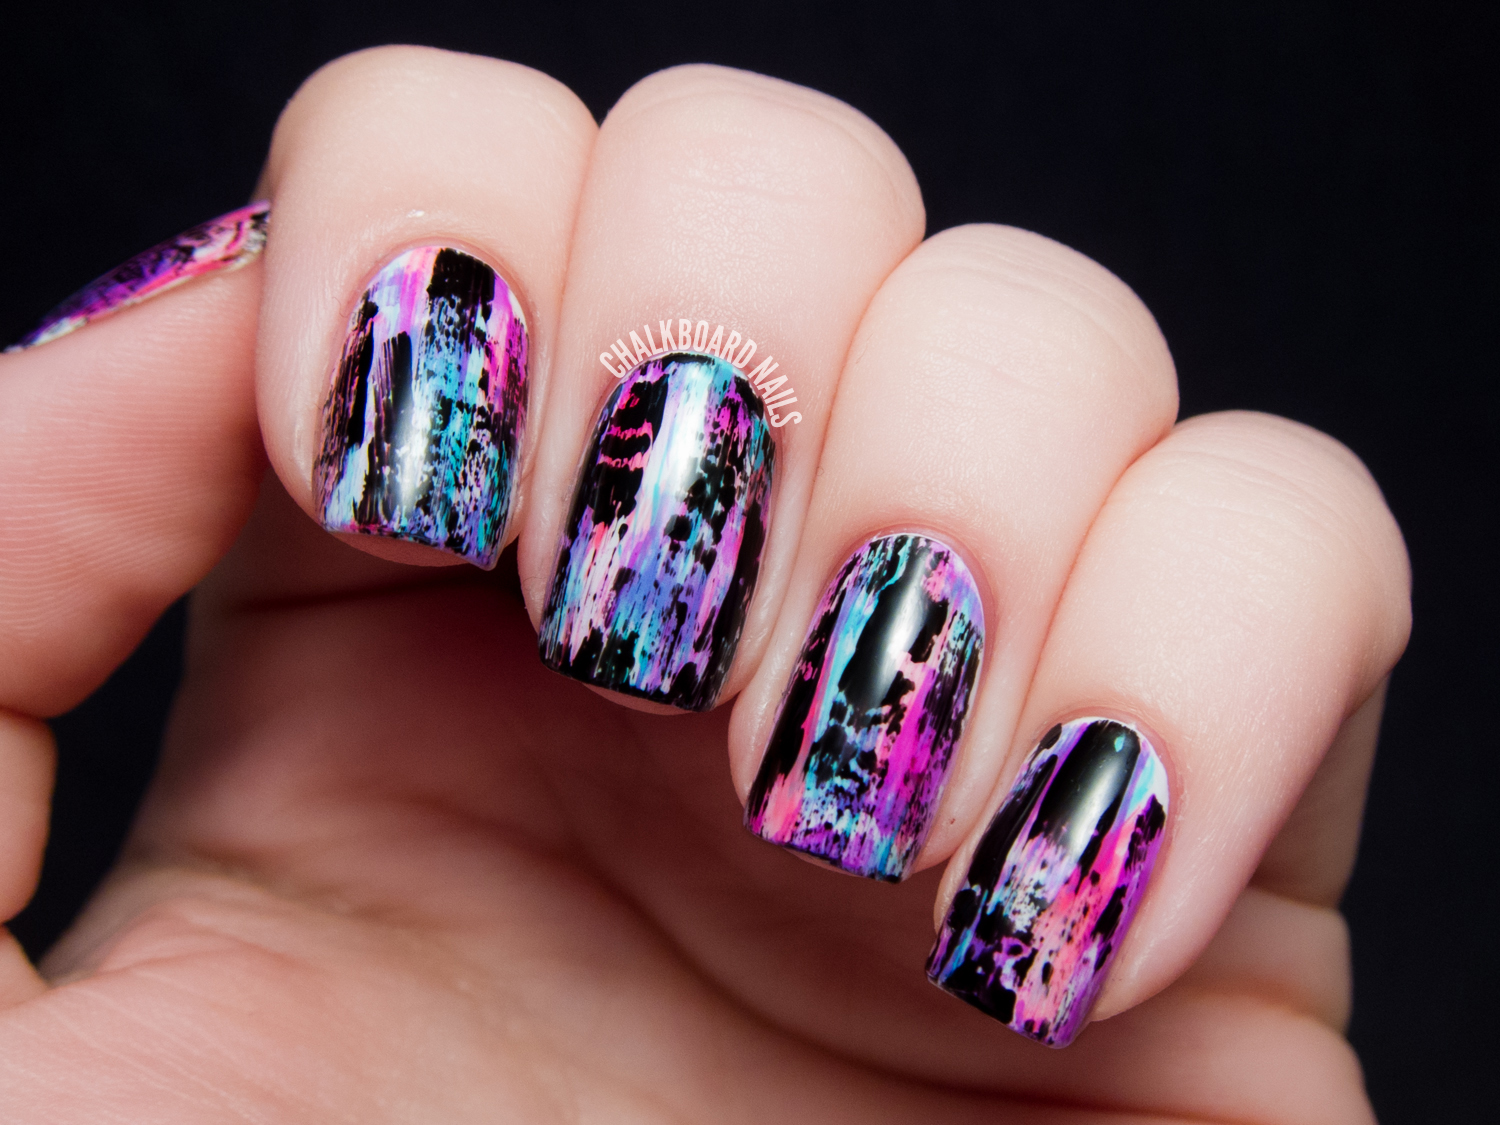 TUTORIAL: Distressed Nail Art (Punk/Grungy Effect) | Chalkboard ...